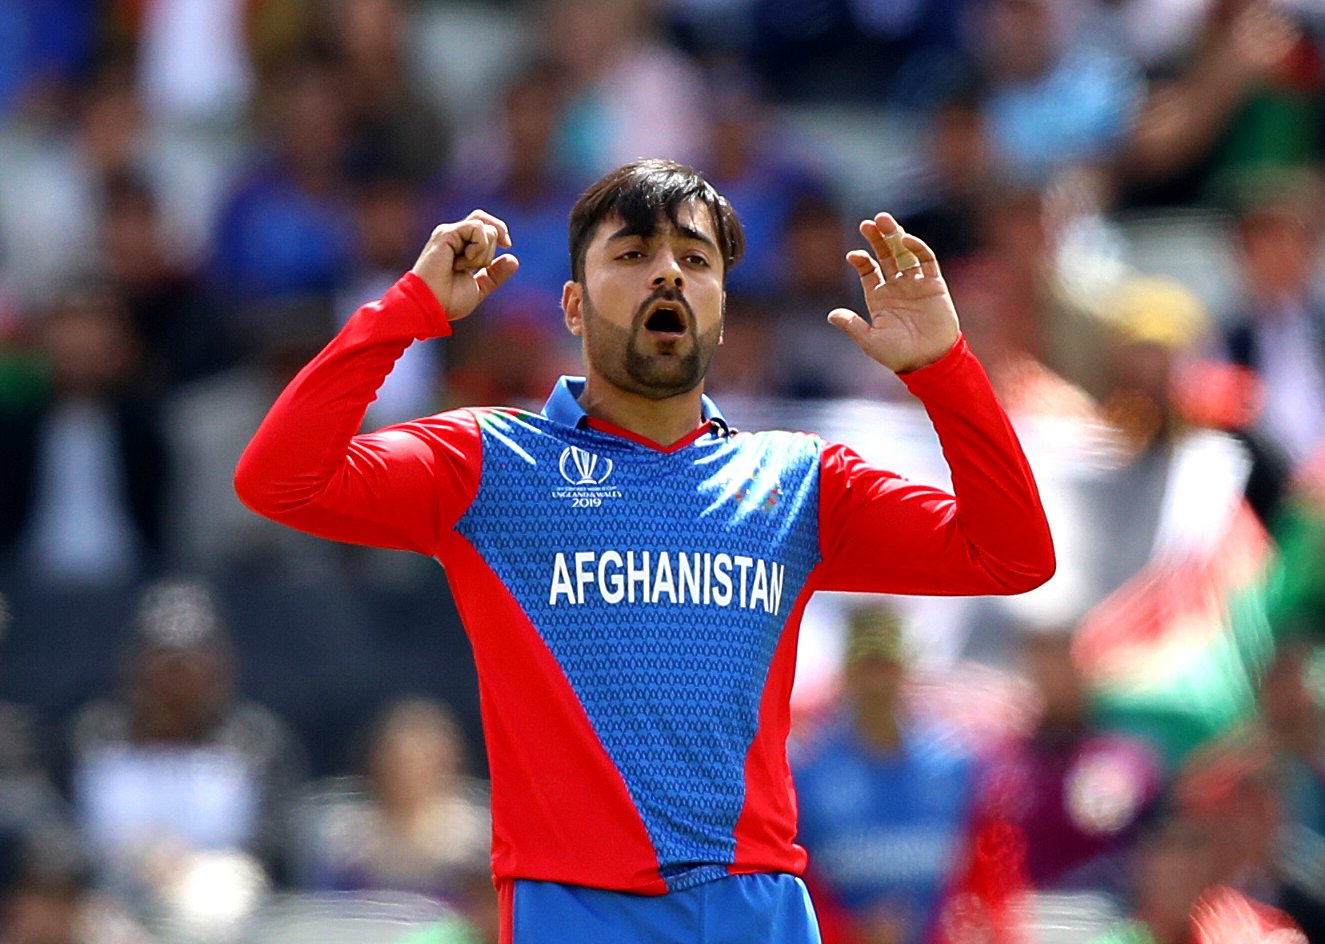 Rashid bowled a horrendous spell of 0-110 in 9 overs against England | Image Source: ESPN